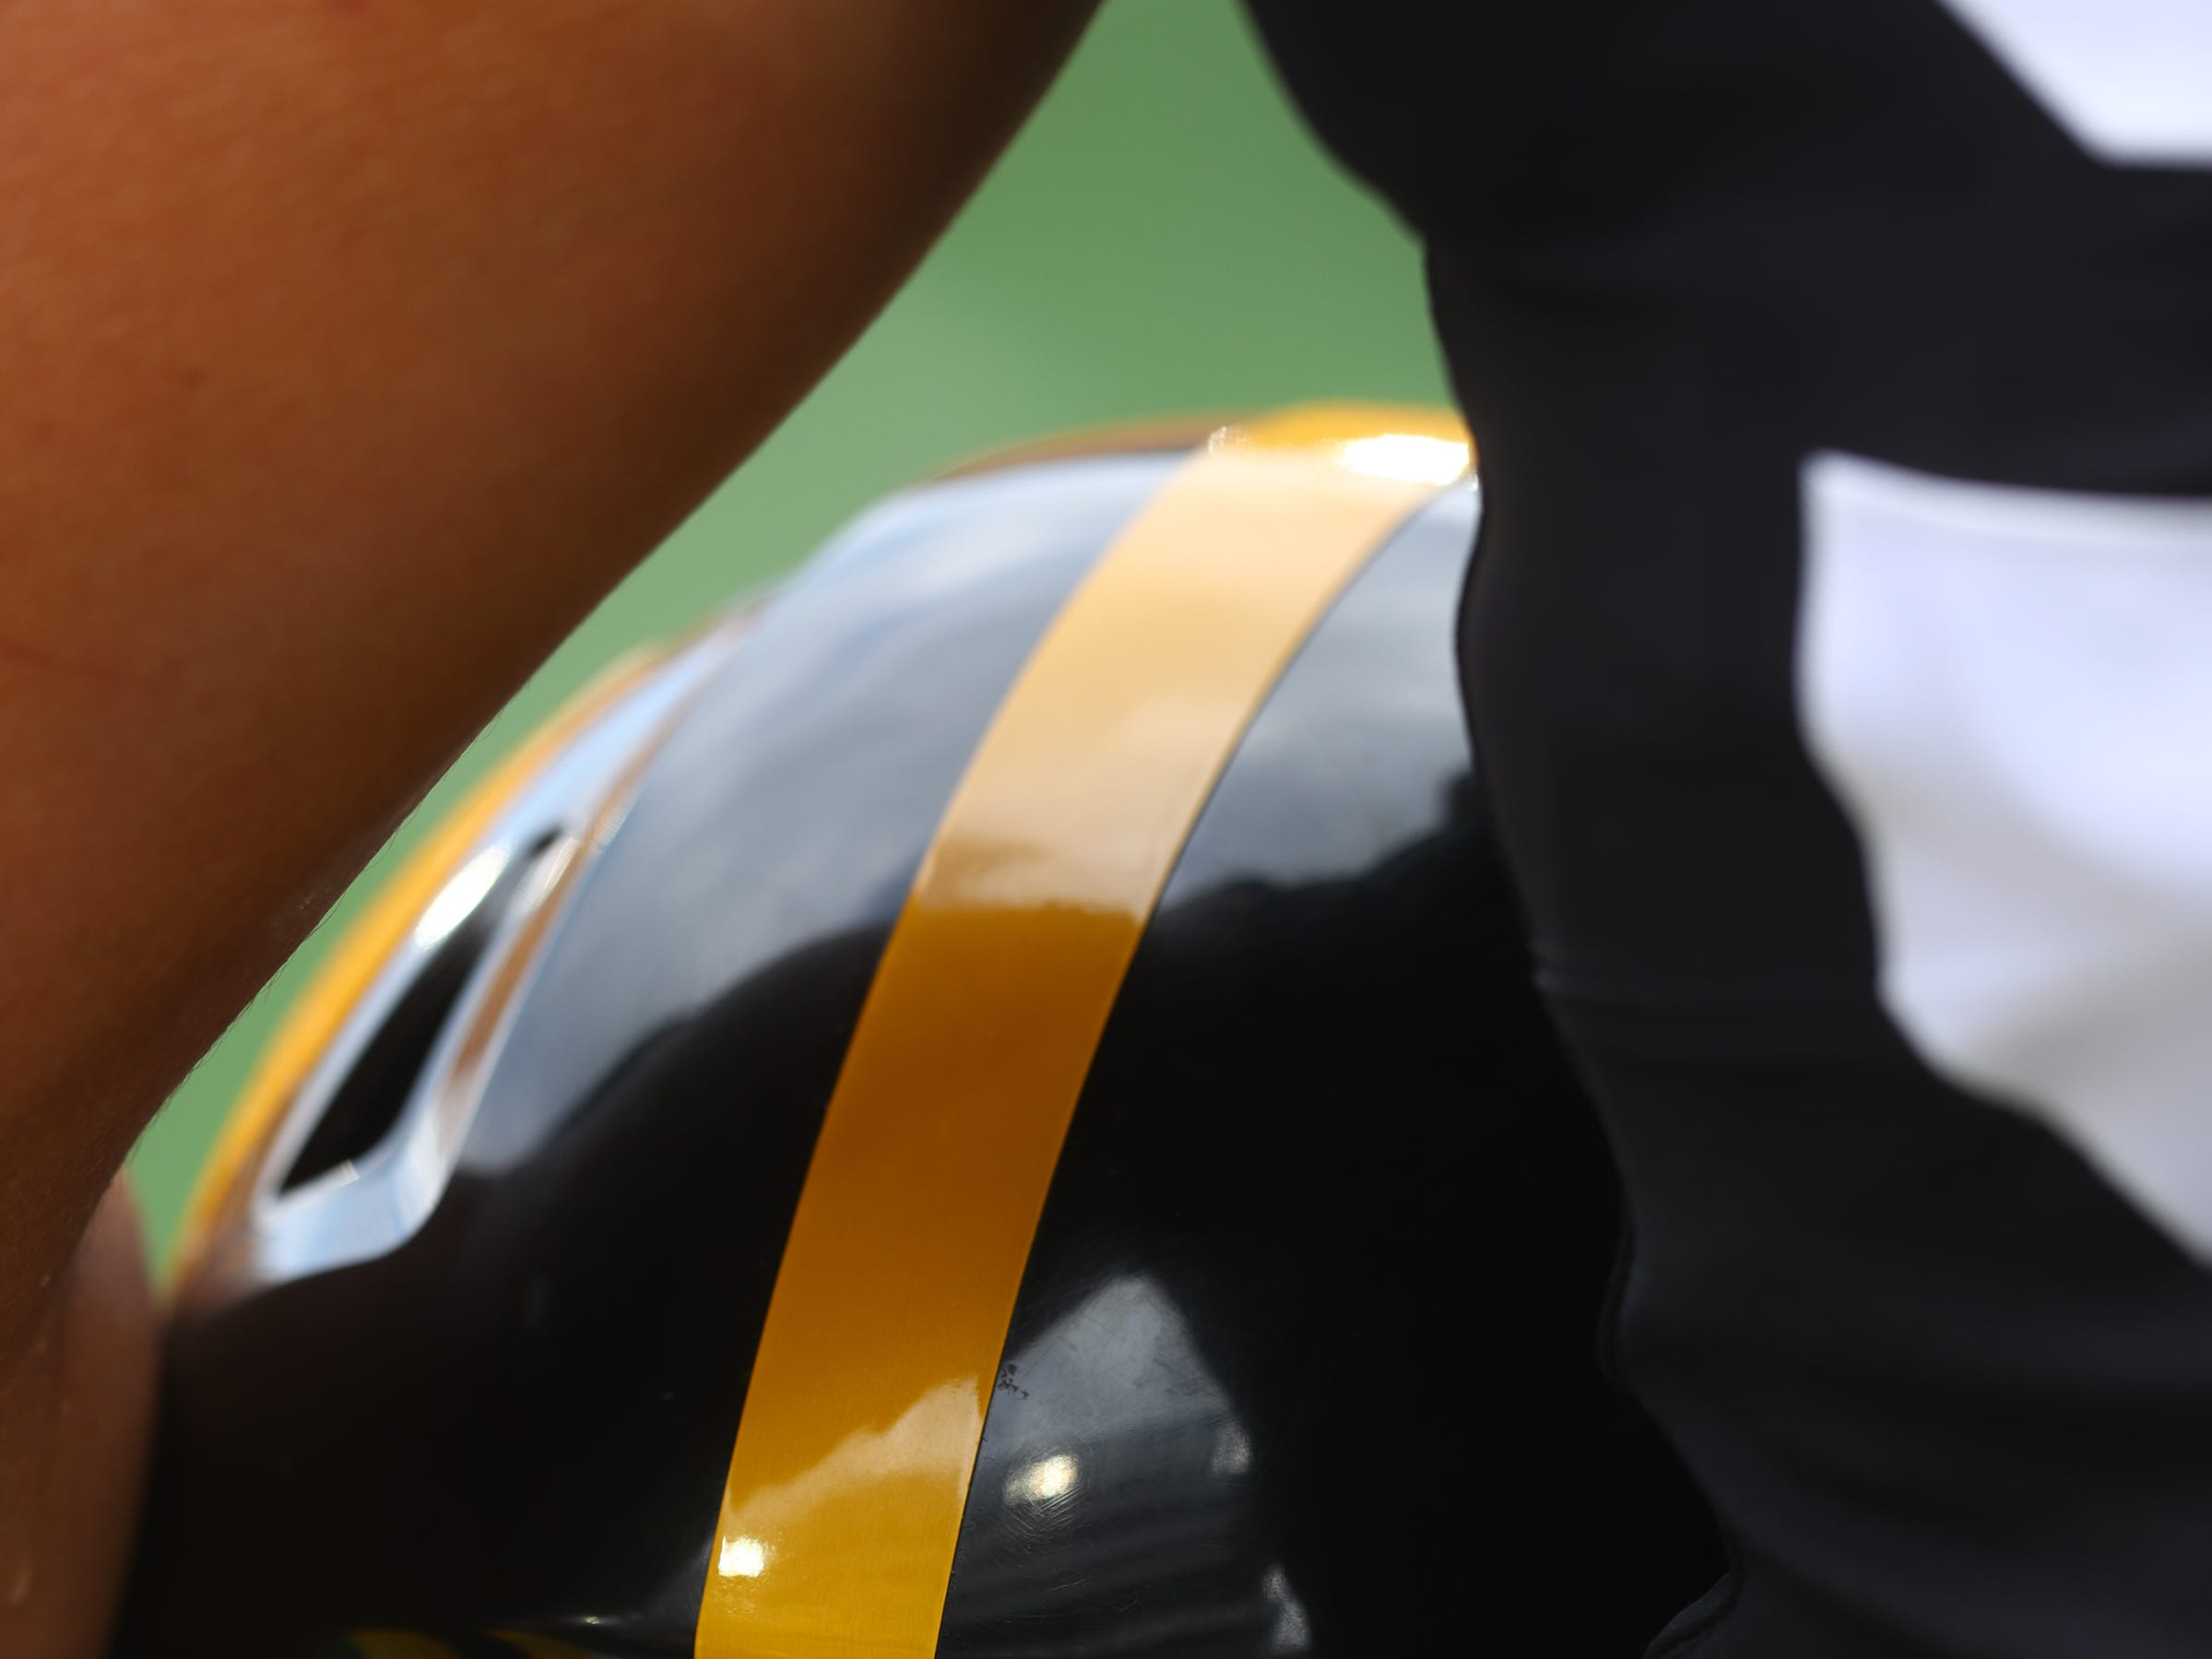 Iowa's A.J. Epenesa stands for the national anthem during the Hawkeyes' game against Northern Illinois at Kinnick Stadium on Satuday, Sept. 1, 2018.